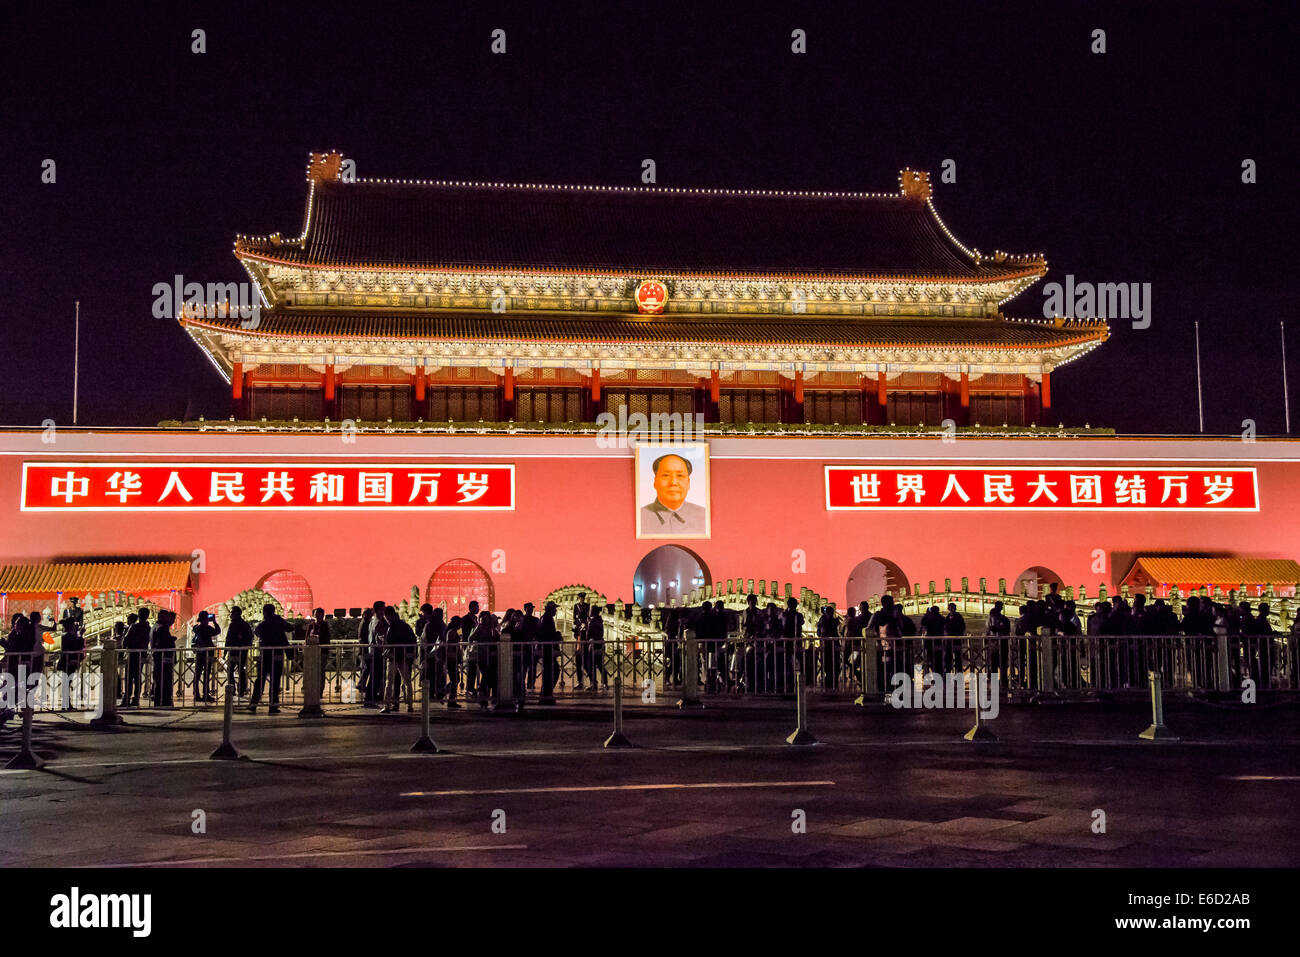 Main gate of the Imperial Palace at night, Tiananmen Square, Forbidden City, Beijing, China - Stock Image